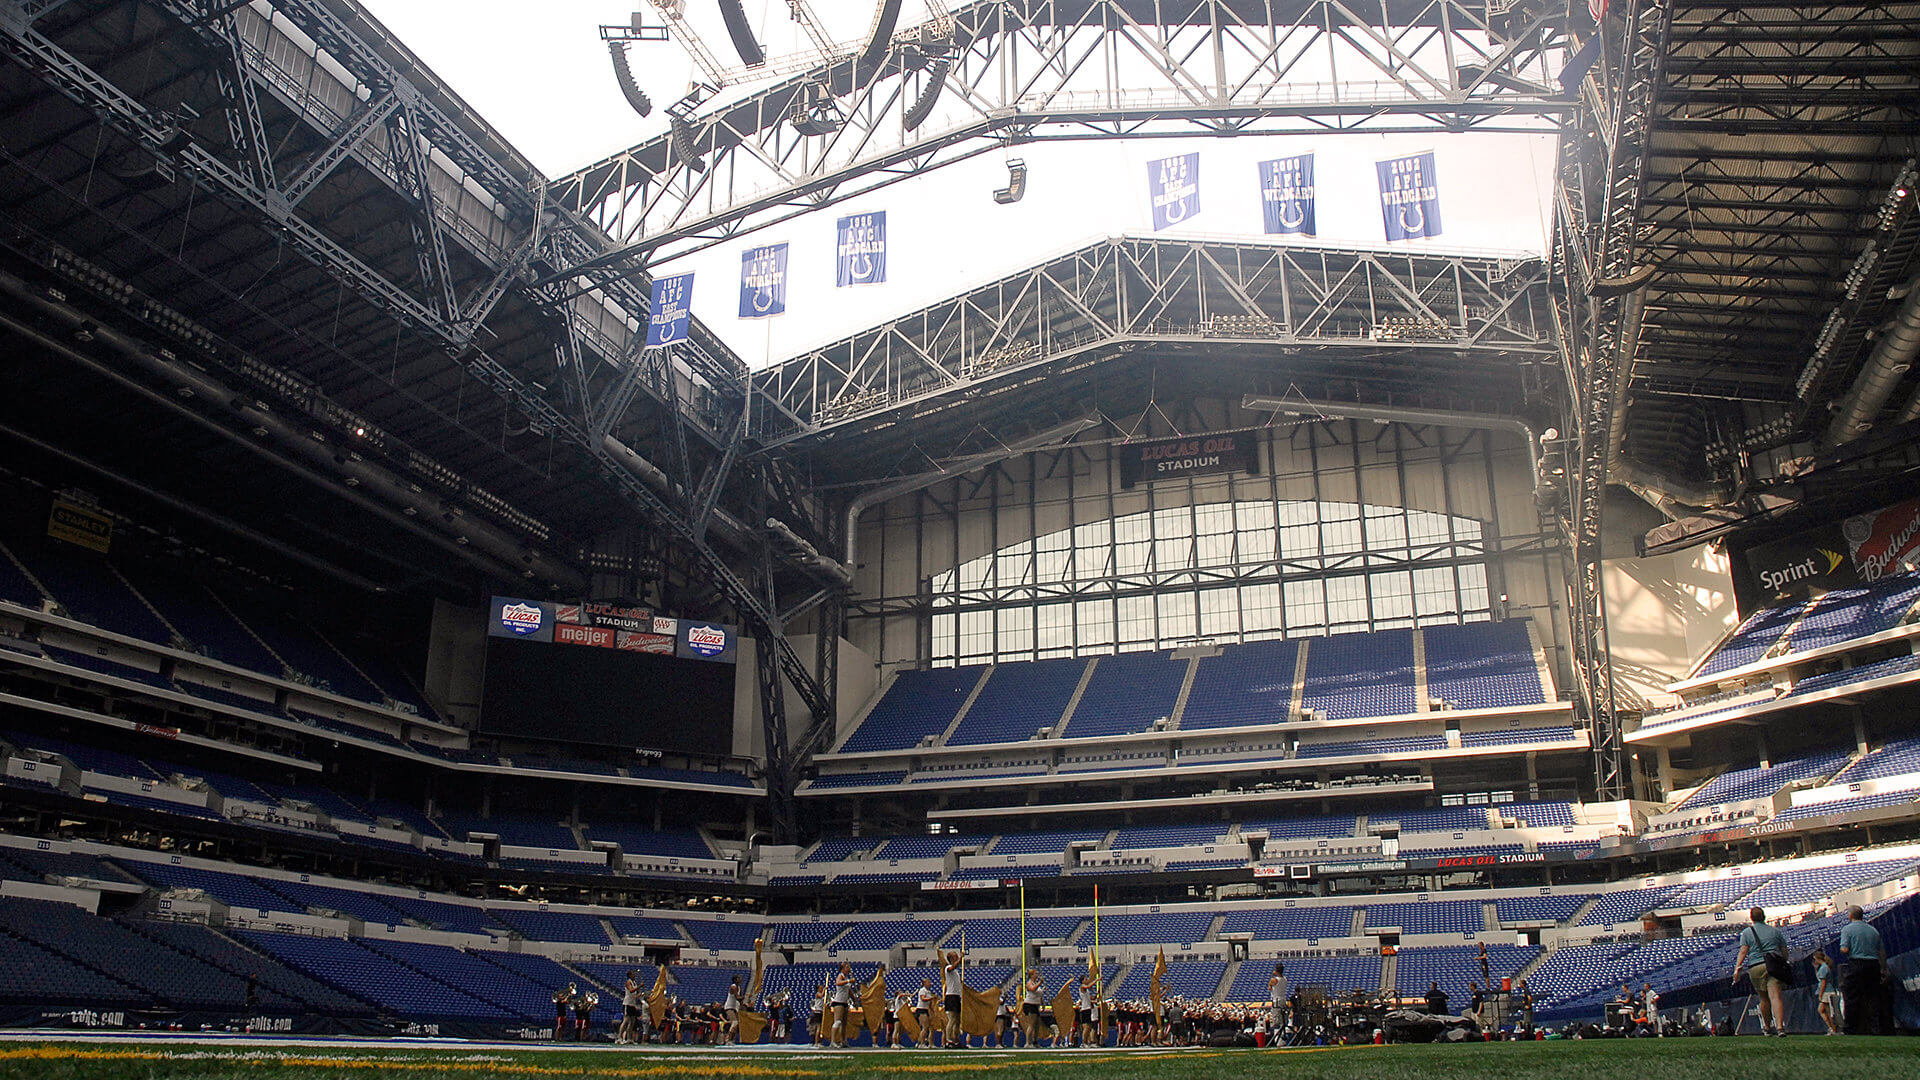 Plans for roof to be open at Wednesday's DCI Tour Premiere